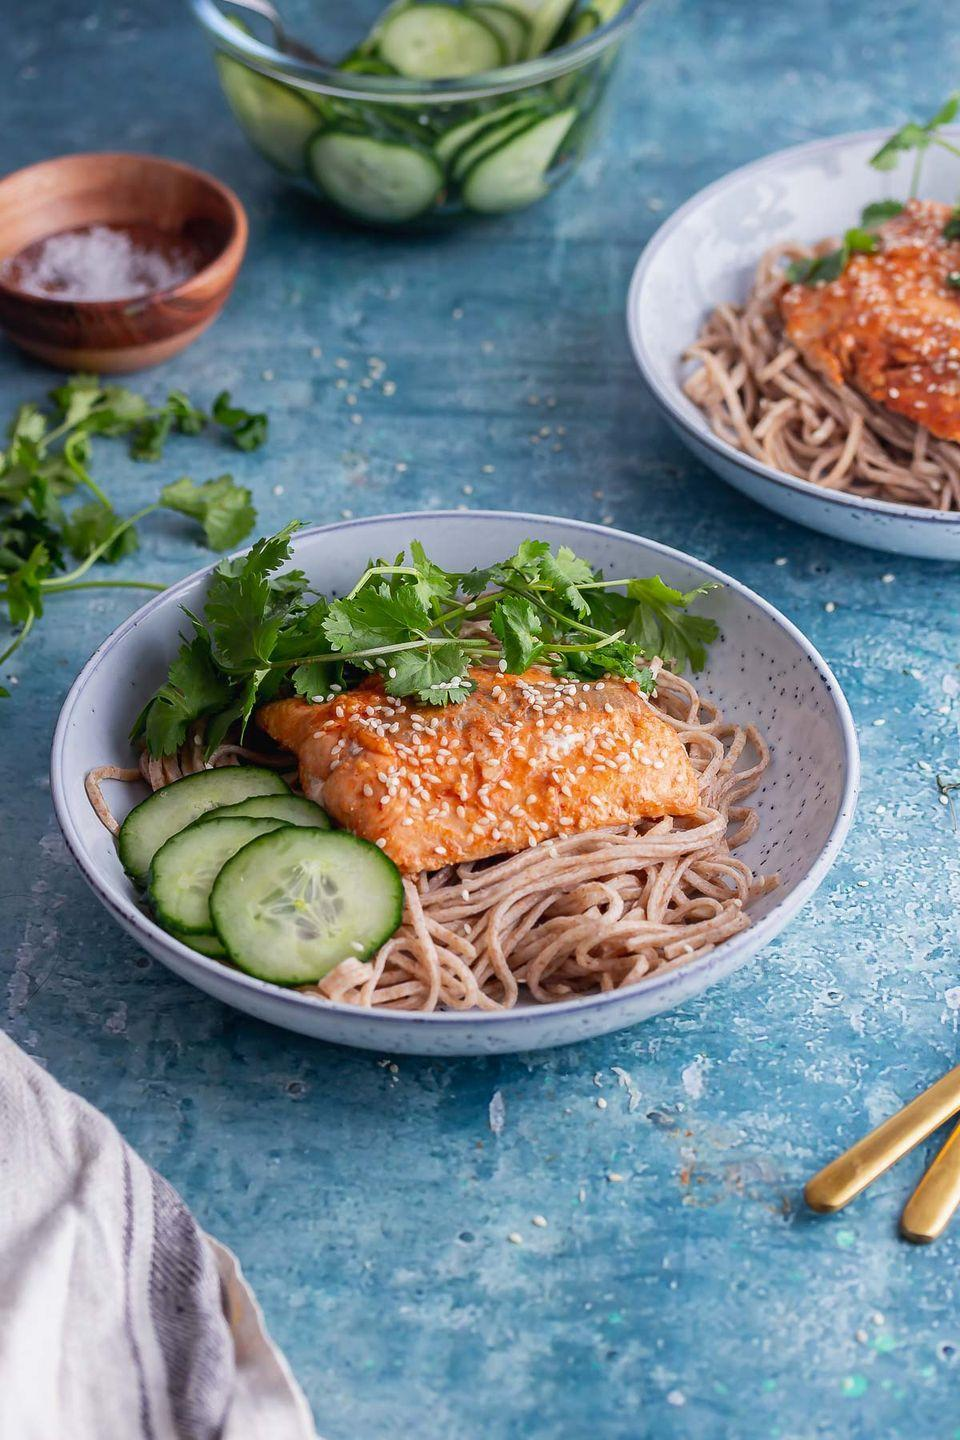 """<p>The side of pickled cucumbers with the honey soy salmon just makes this the best healthy and easy dinner. </p><p>Get the <a href=""""https://thecookreport.co.uk/honey-soy-salmon/"""" rel=""""nofollow noopener"""" target=""""_blank"""" data-ylk=""""slk:Honey Soy Salmon with Noodles & Pickled Cucumber"""" class=""""link rapid-noclick-resp"""">Honey Soy Salmon with Noodles & Pickled Cucumber </a>recipe. </p><p>Recipe from <a href=""""https://thecookreport.co.uk/"""" rel=""""nofollow noopener"""" target=""""_blank"""" data-ylk=""""slk:The Cook Report"""" class=""""link rapid-noclick-resp"""">The Cook Report</a>.</p>"""